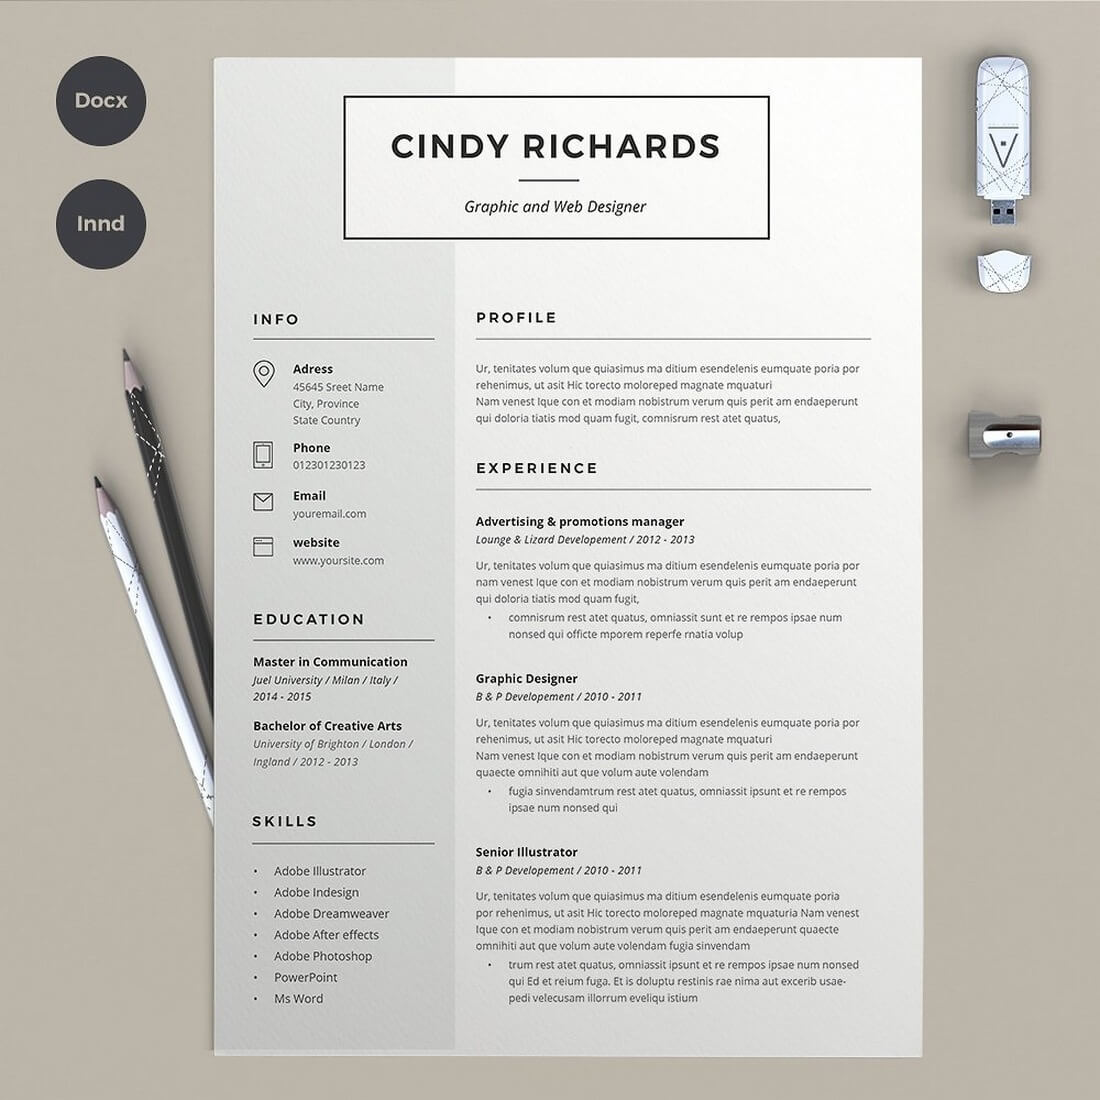 Cool 1 Page Resume Format Free Download Big 10 Envelope Template Rectangular 15 Year Old Resume Sample 18th Invitation Templates Old 1and1 Templates Black2 Binder Spine Template Designing A Resume | Infographic Resume Samples